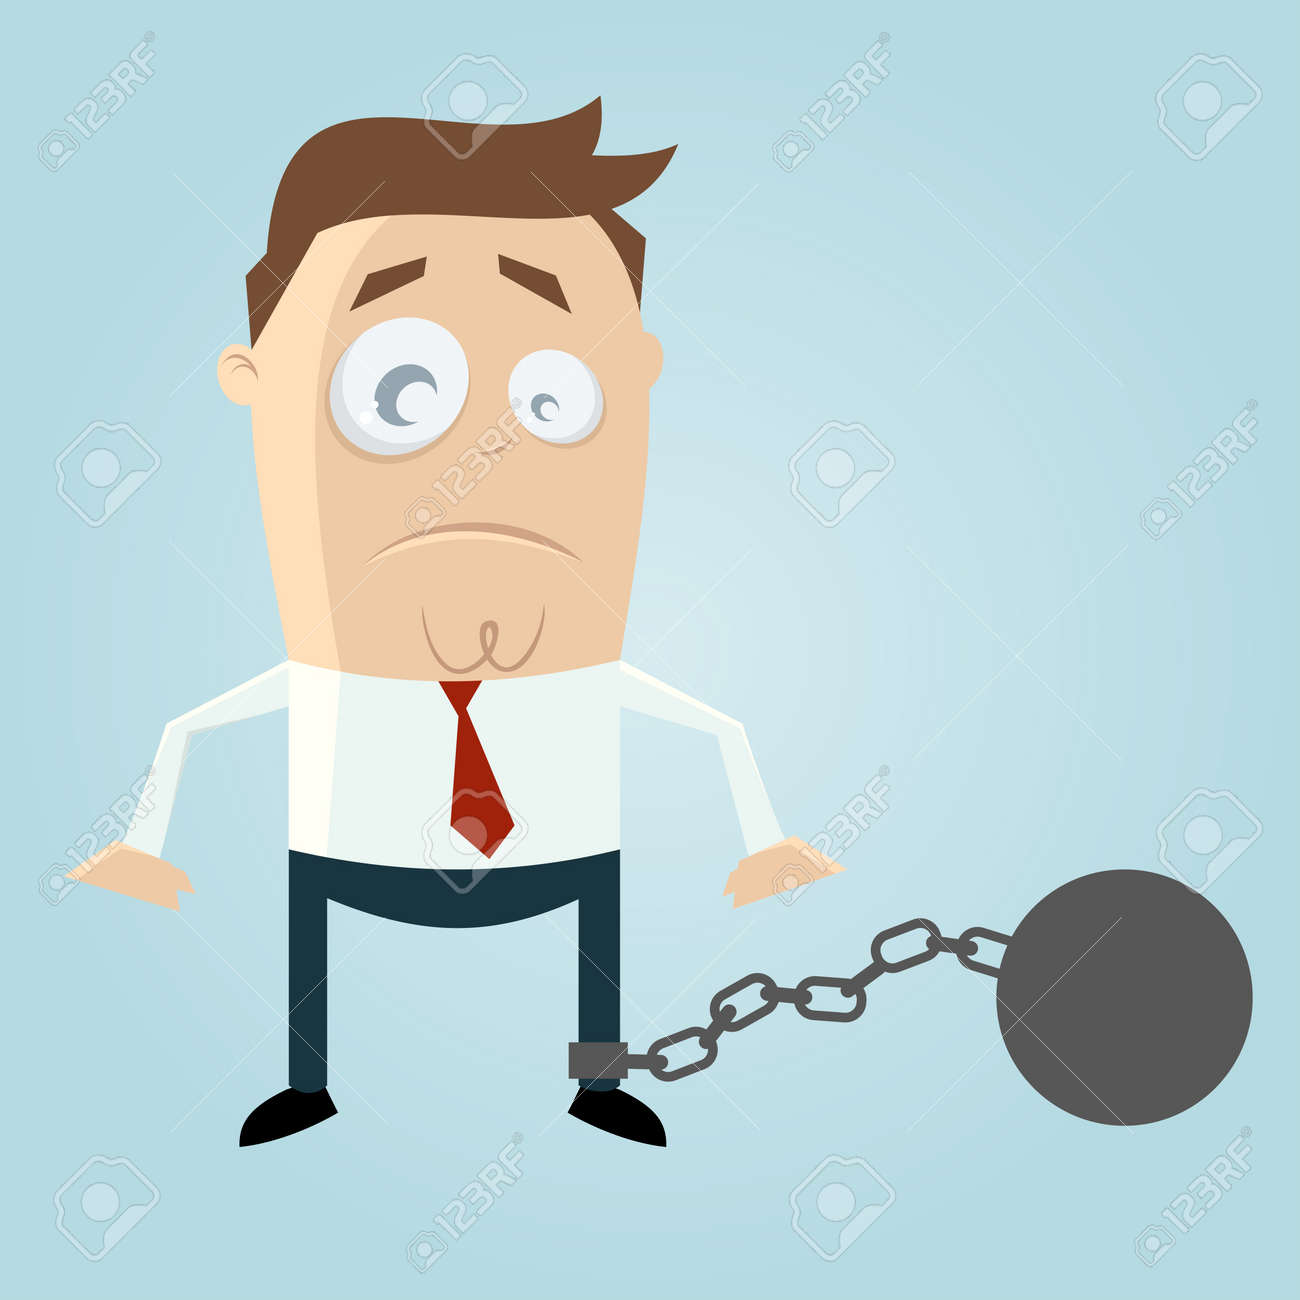 cartoon man in chains Stock Vector - 20111672